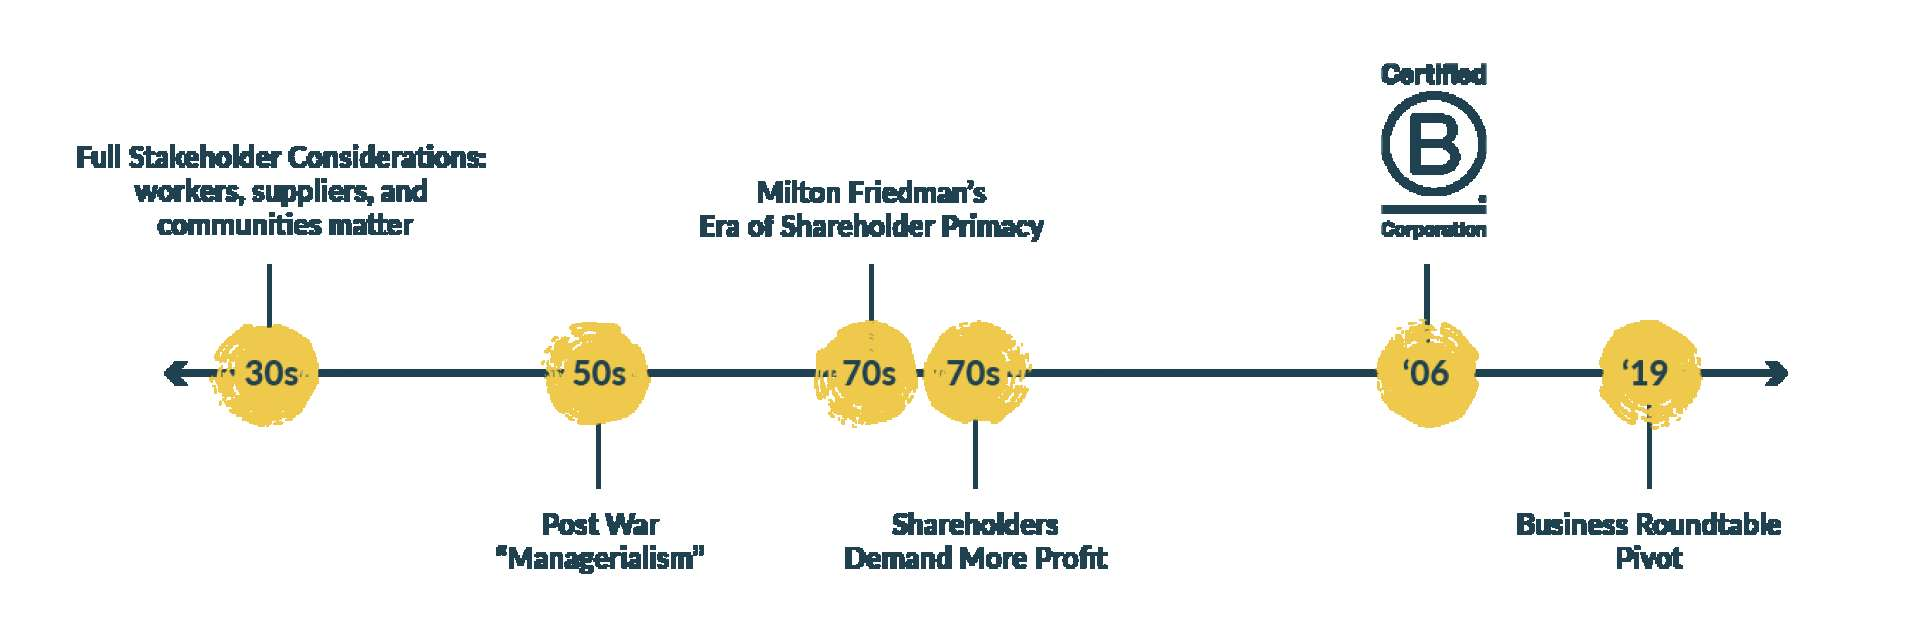 Measure Meant Governance Timeline showing how business priorities shifted away from full stakeholder considerations toward shareholders and profit, and more recently pivoting back towards full considerations with Certified B Corporation and the Business Roundtable Pivot.